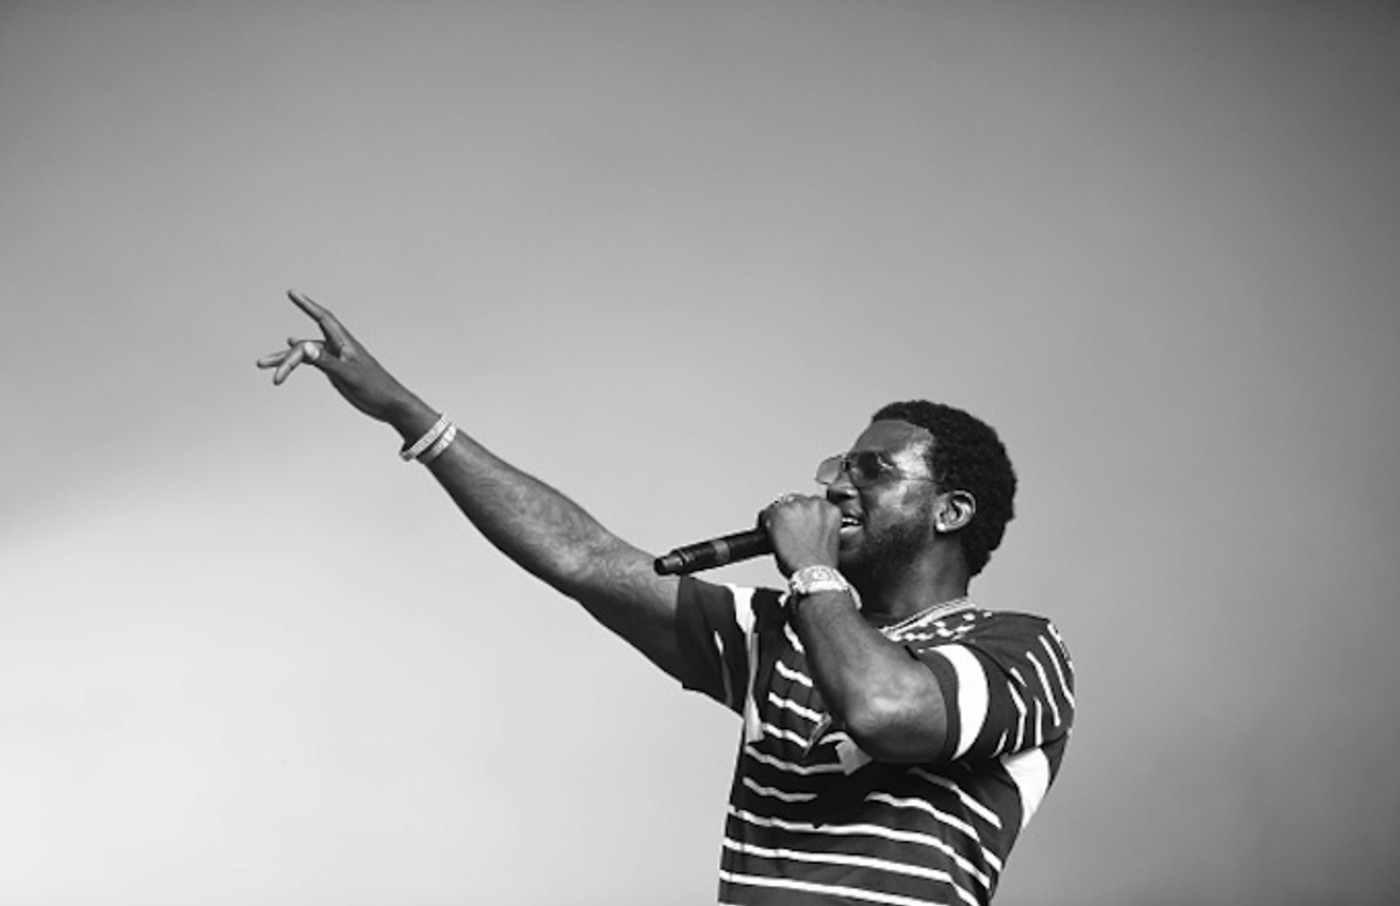 Gucci Mane performs at the Sahara Tent during day 2